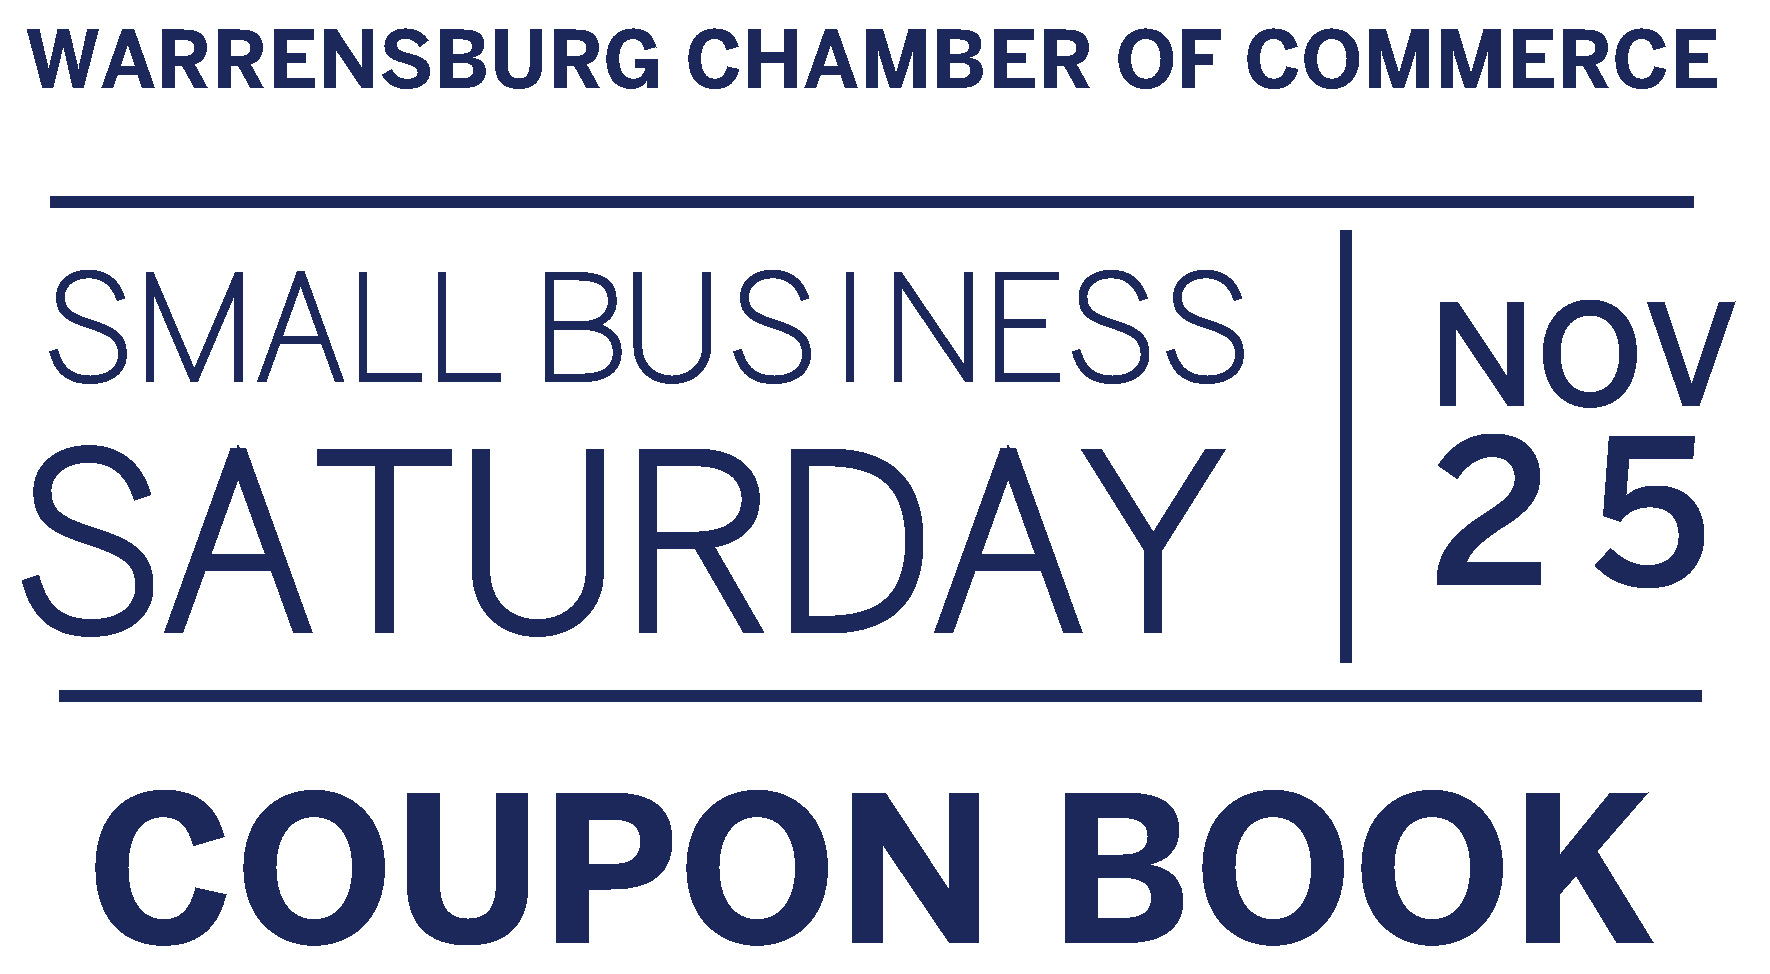 Coupons & Discounts : Warrensburg Chamber Of Commerce